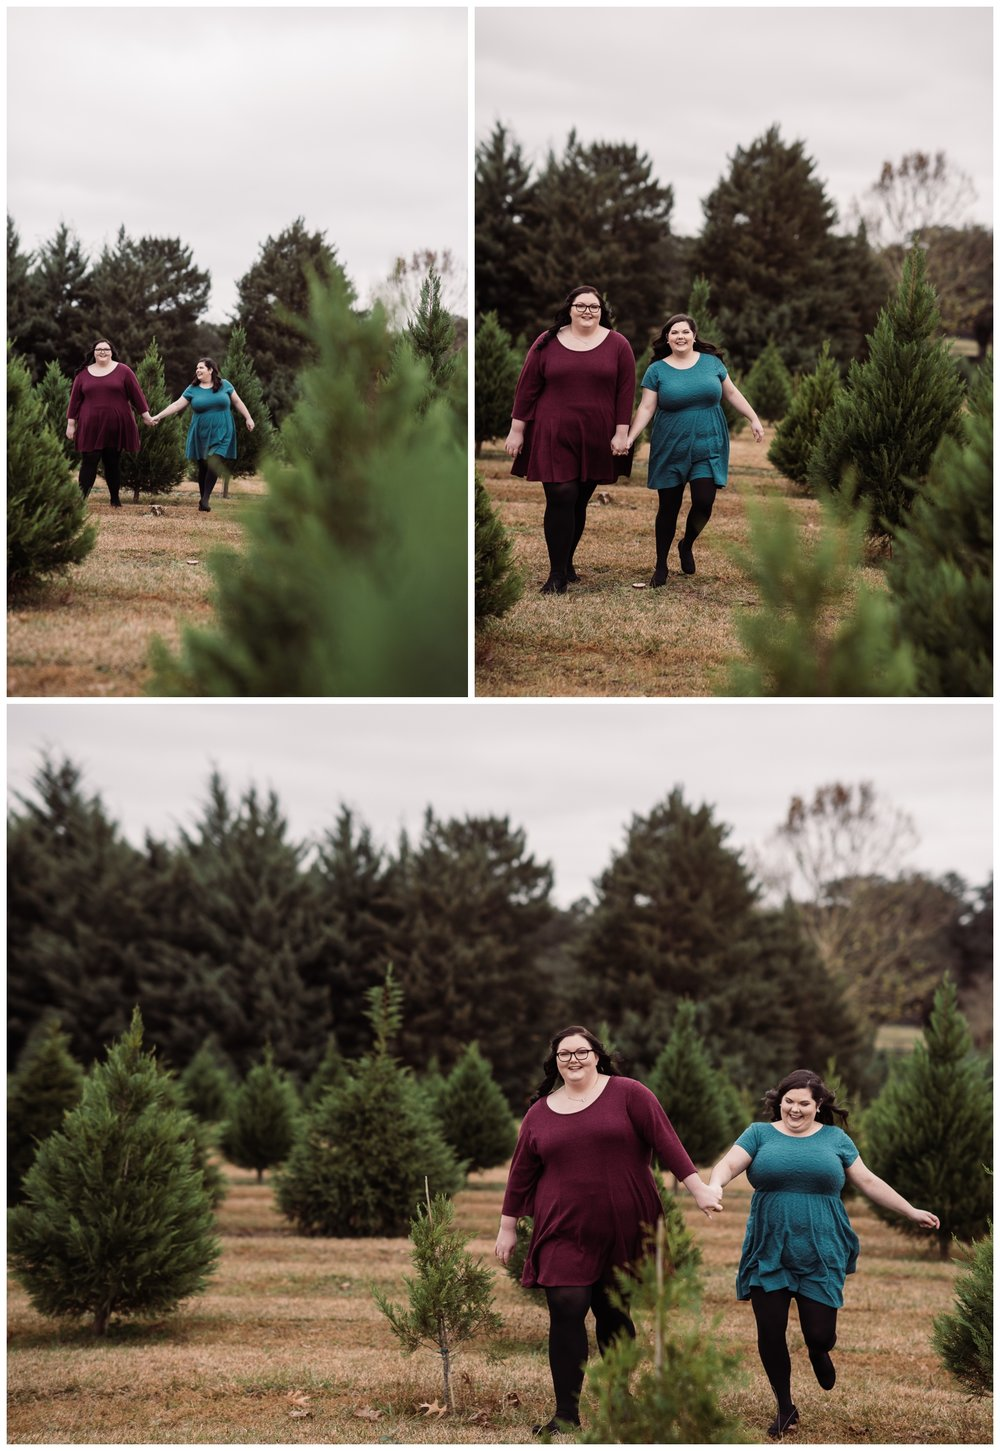 Top-New-Orleans-Wesdding-Photographer-Chirstmas-Tree-Farm-Engagement-Shoot--KallistiaPhotography_0001.jpg